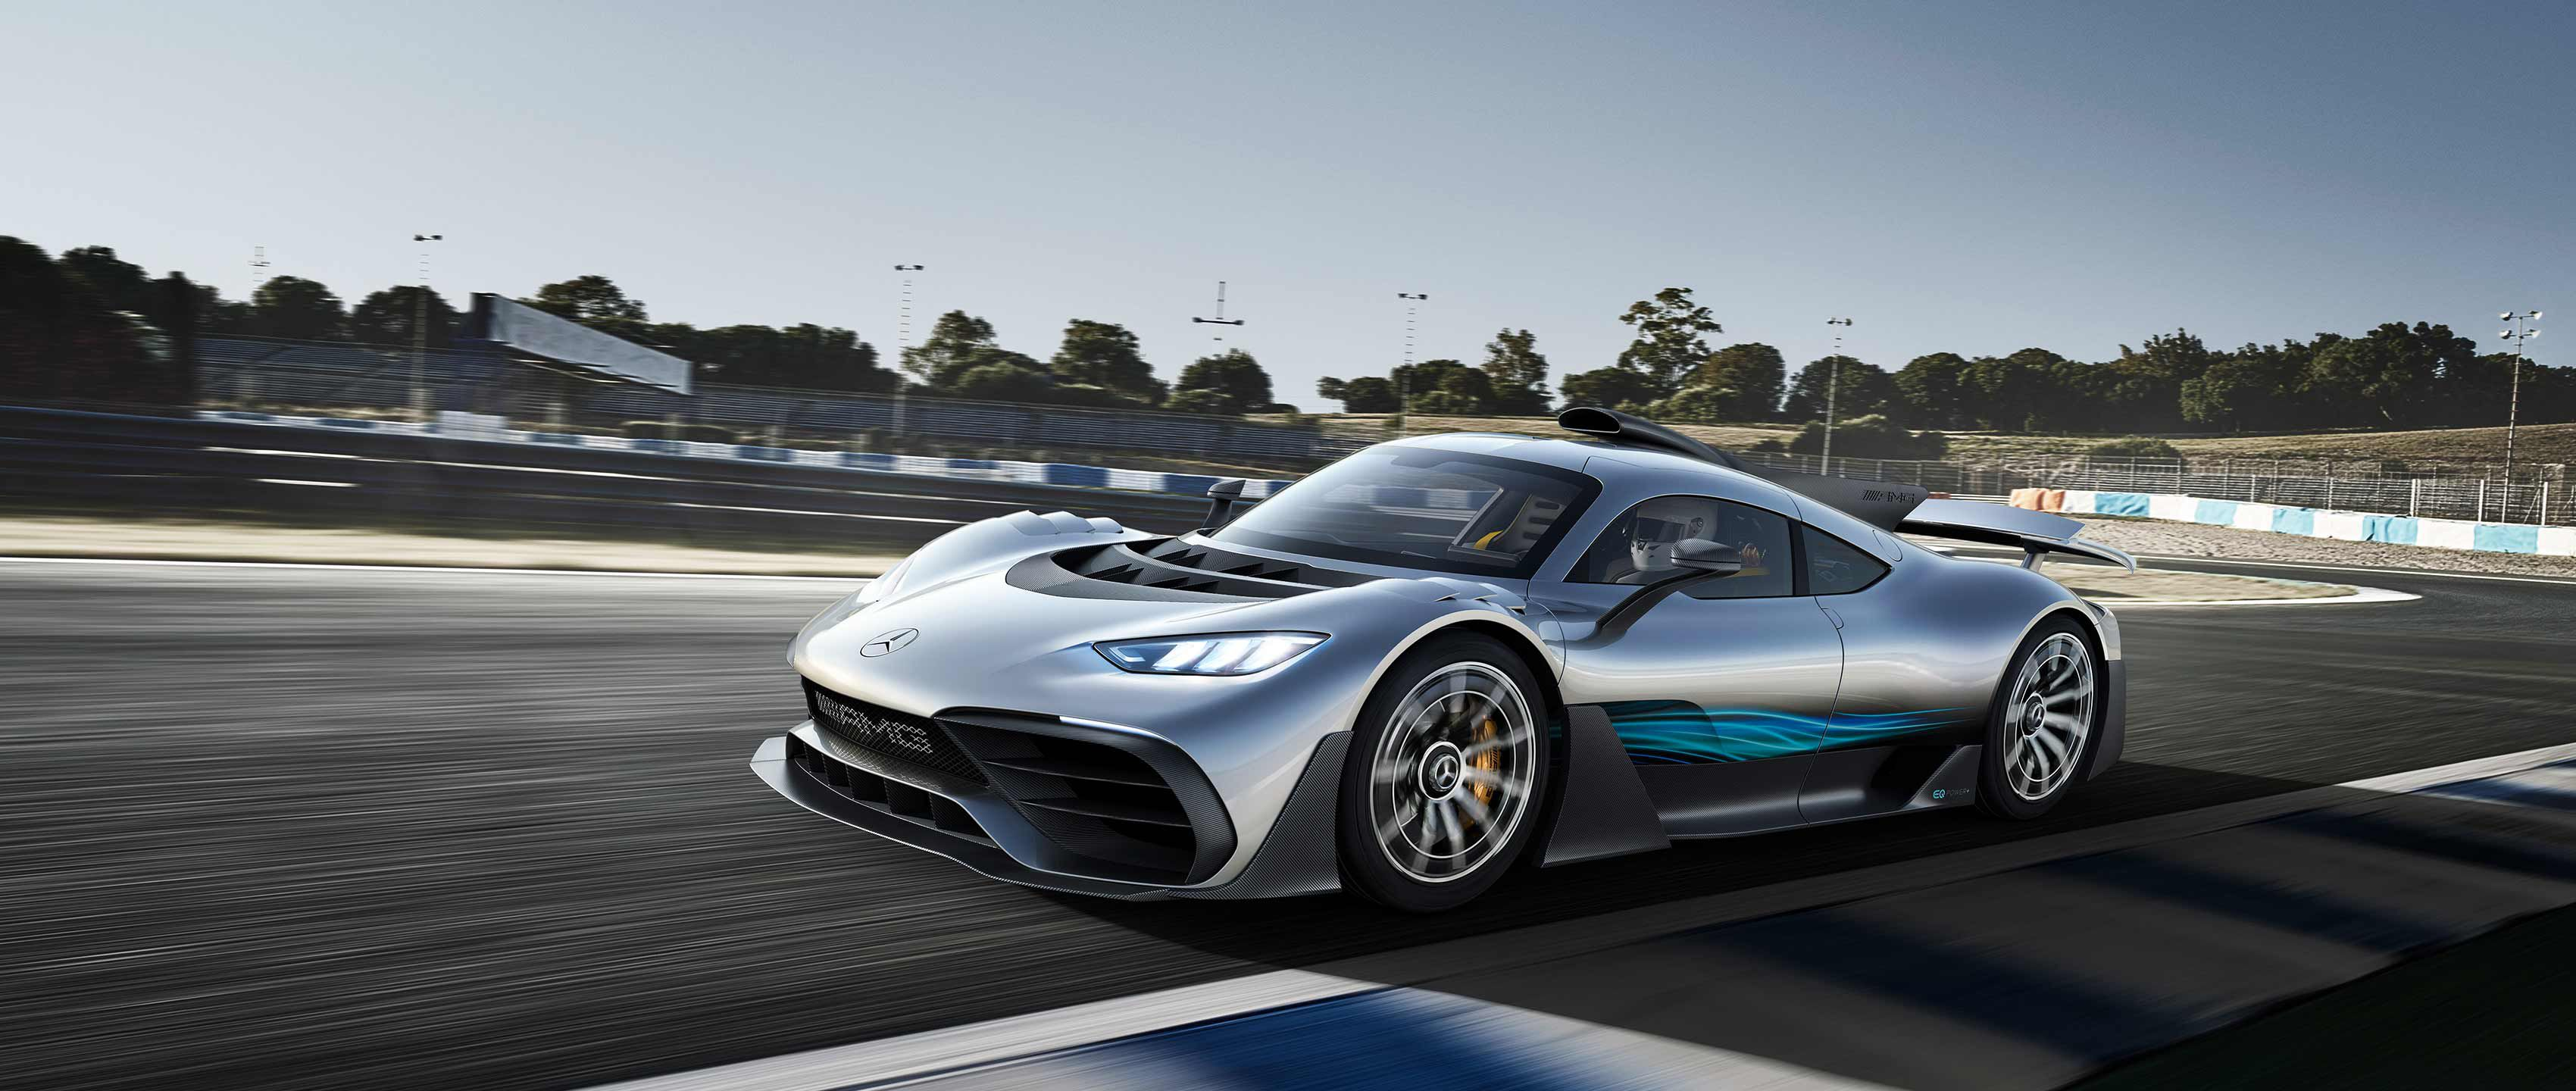 mercedes presenta la hypercar amg project one e trolla bmw ironia su twitter. Black Bedroom Furniture Sets. Home Design Ideas